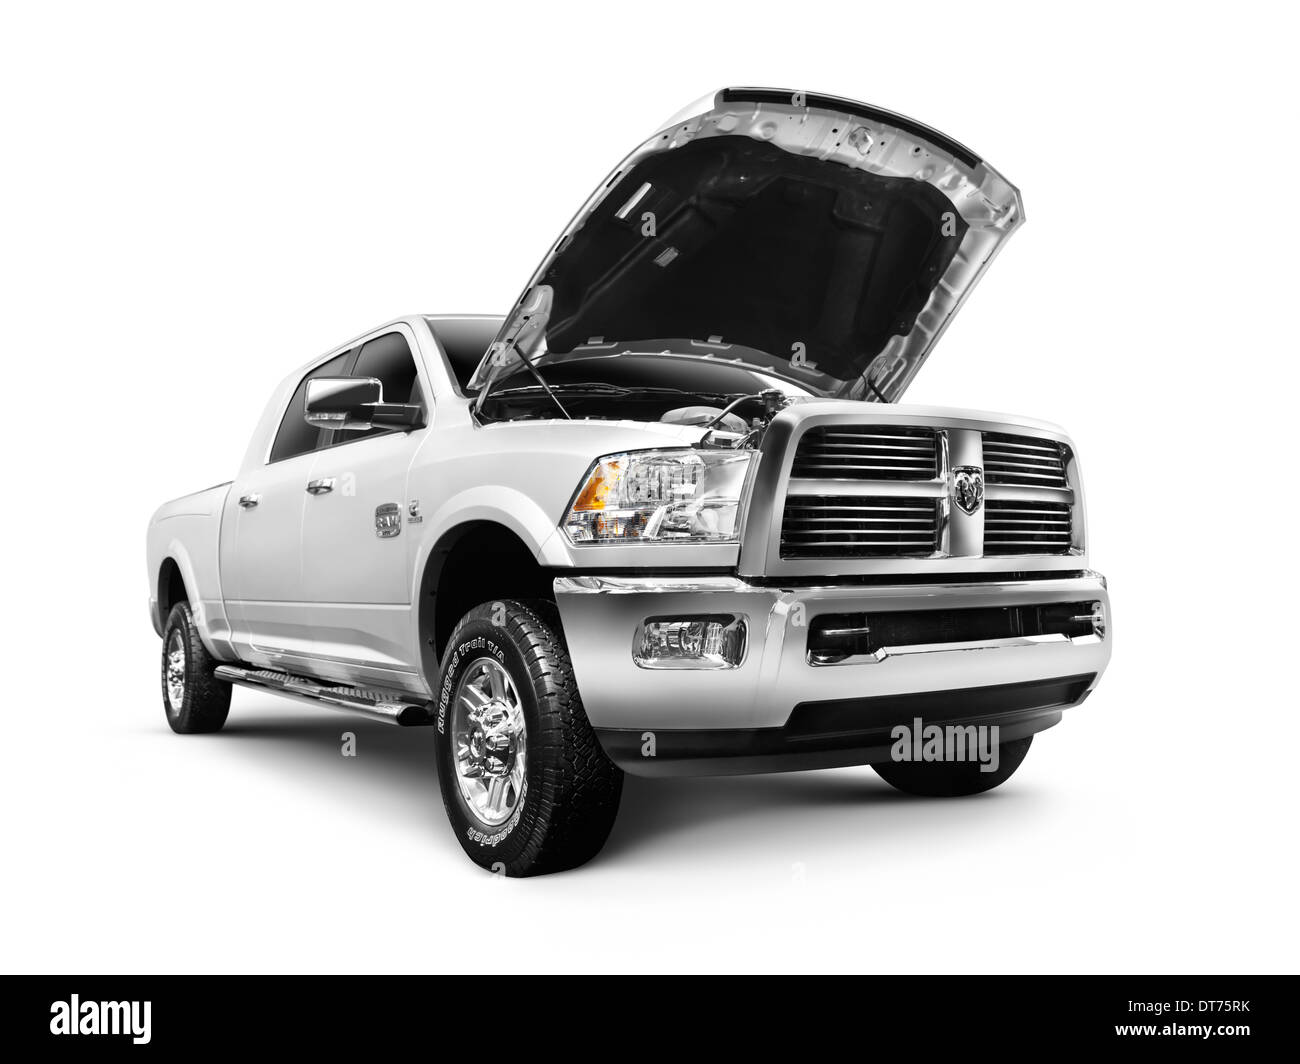 white 2012 dodge ram 1500 laramie longhorn pickup truck isolated on stock photo 66541095 alamy. Black Bedroom Furniture Sets. Home Design Ideas